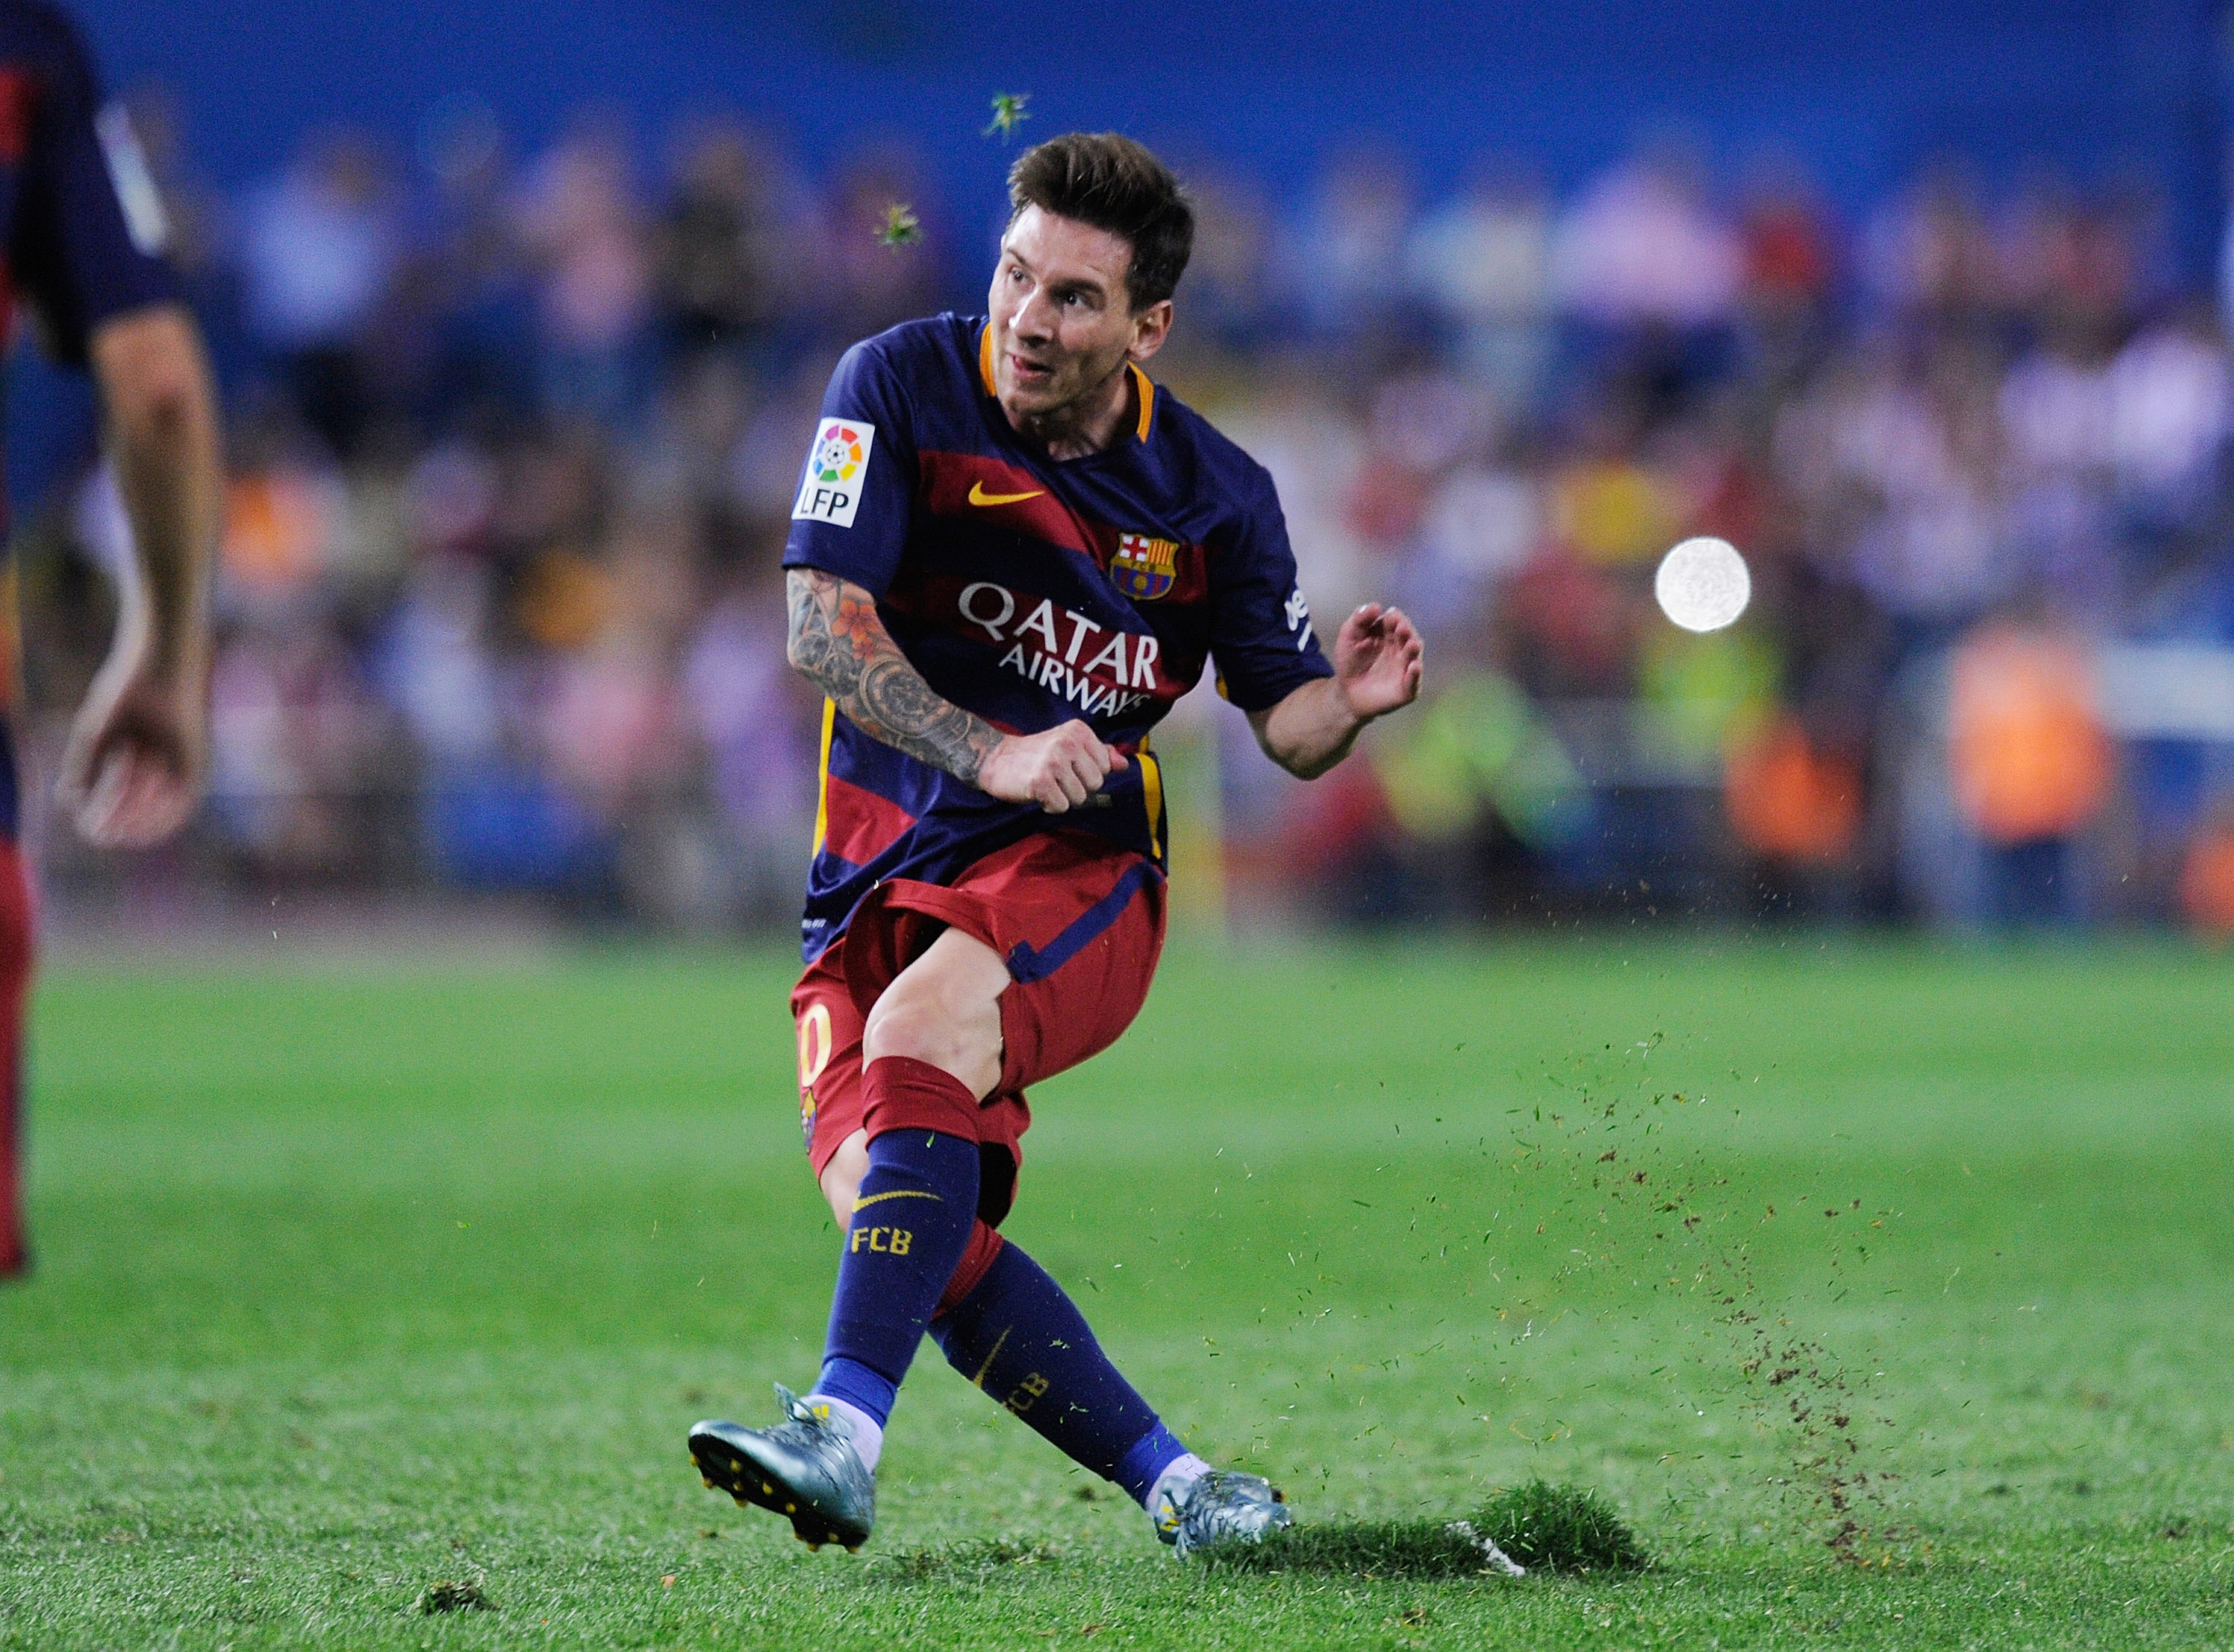 Related Keywords & Suggestions for Messi Shooting